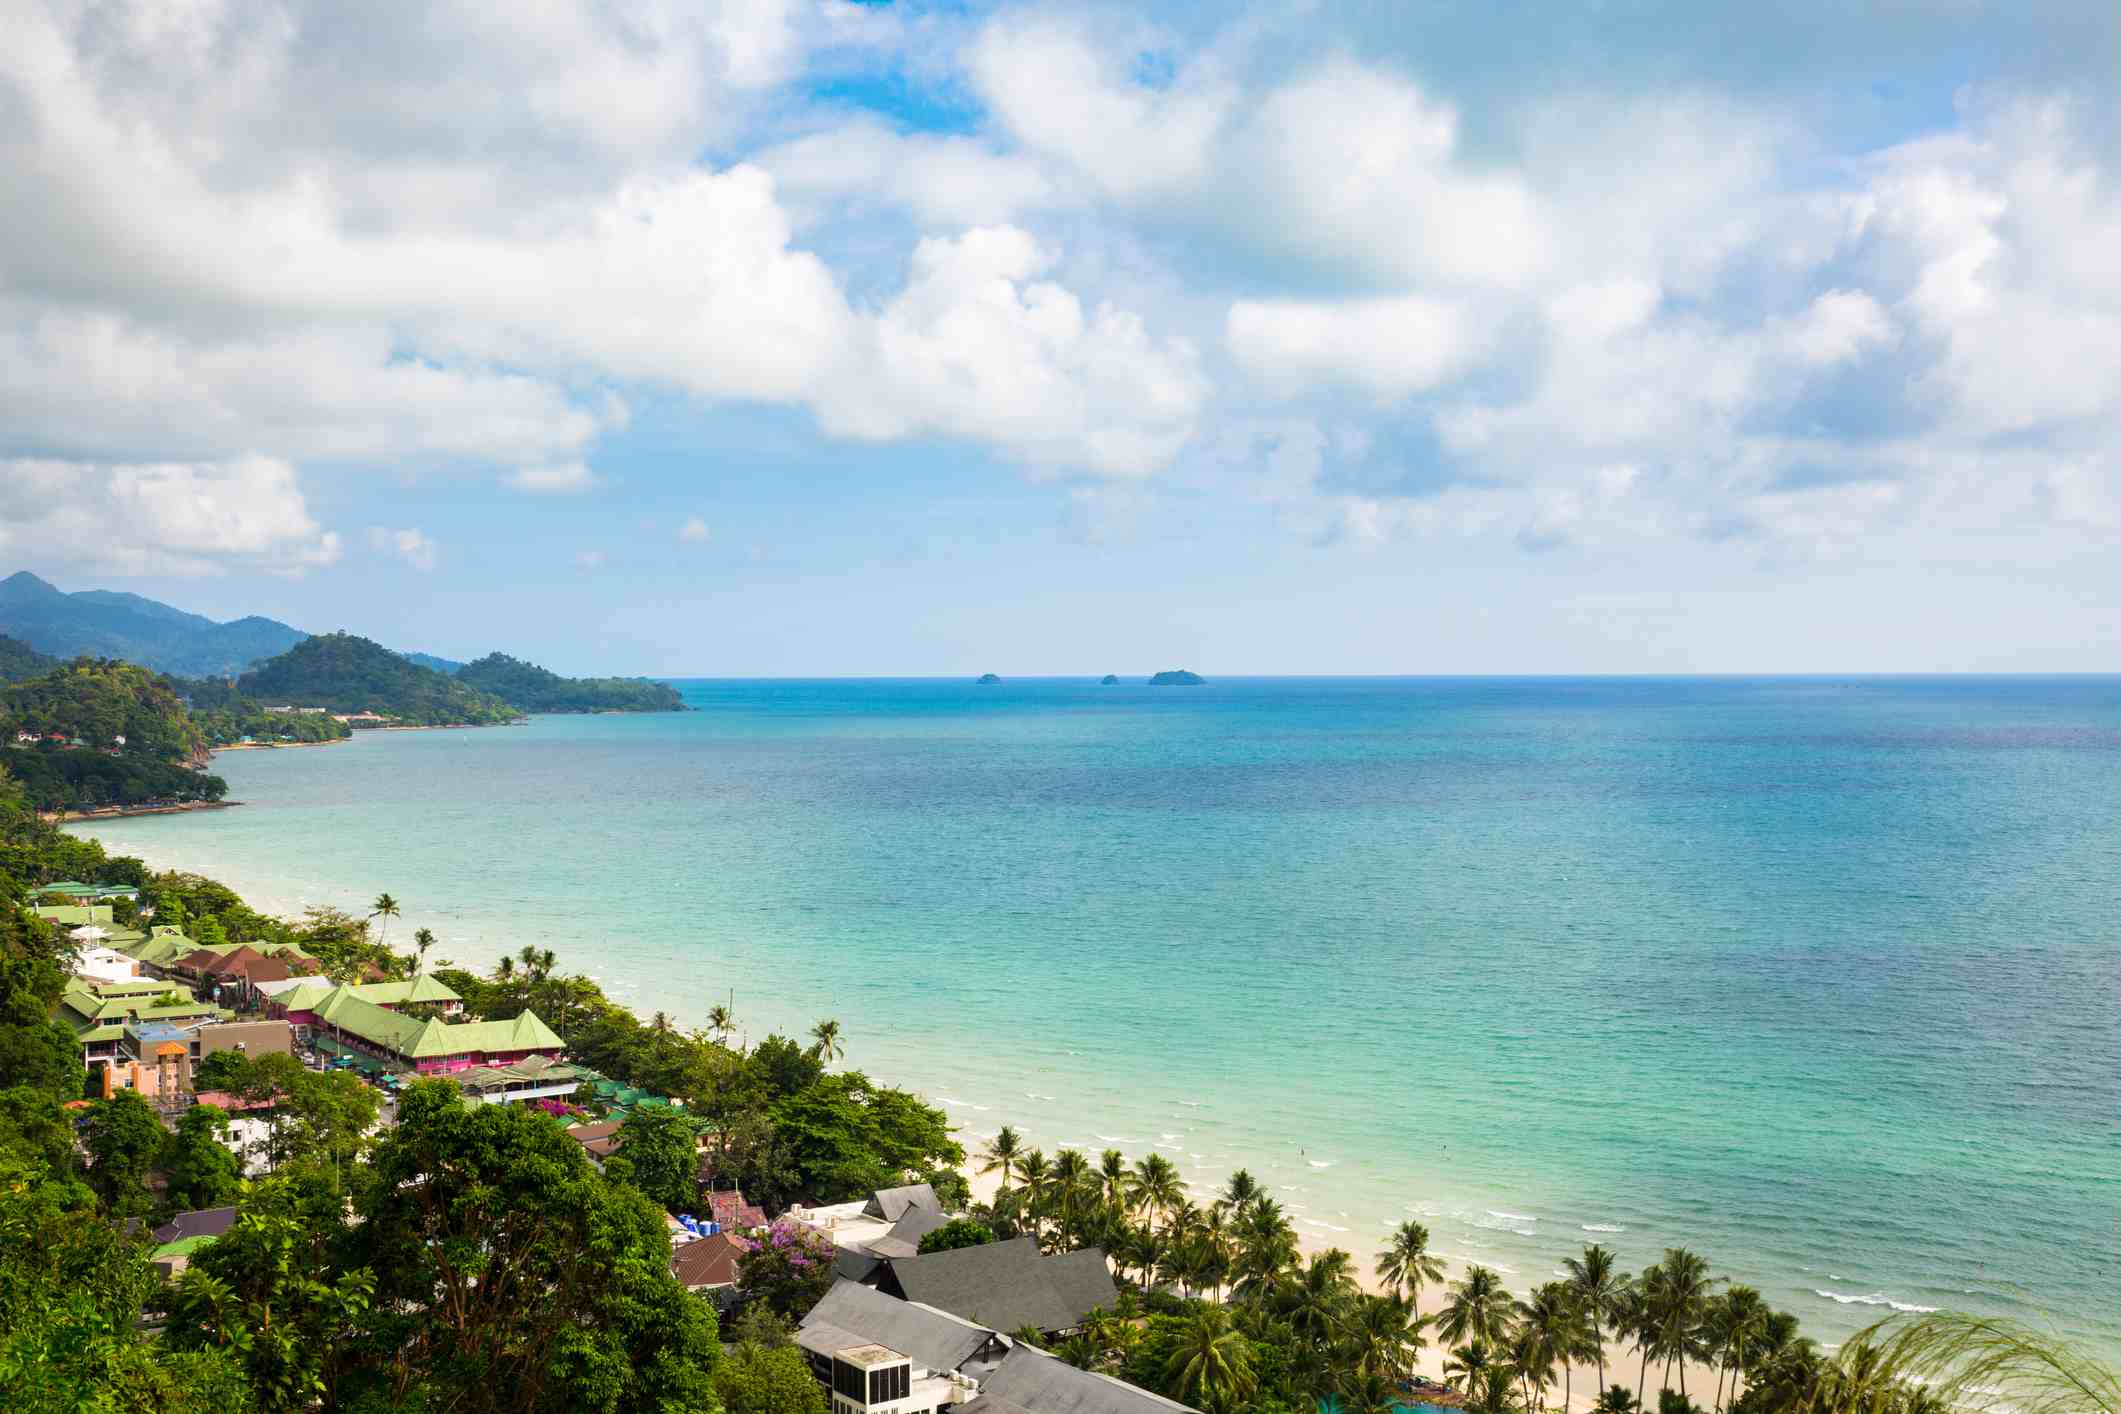 Elevated view of White Sand Beach on Koh Chang, Thailand